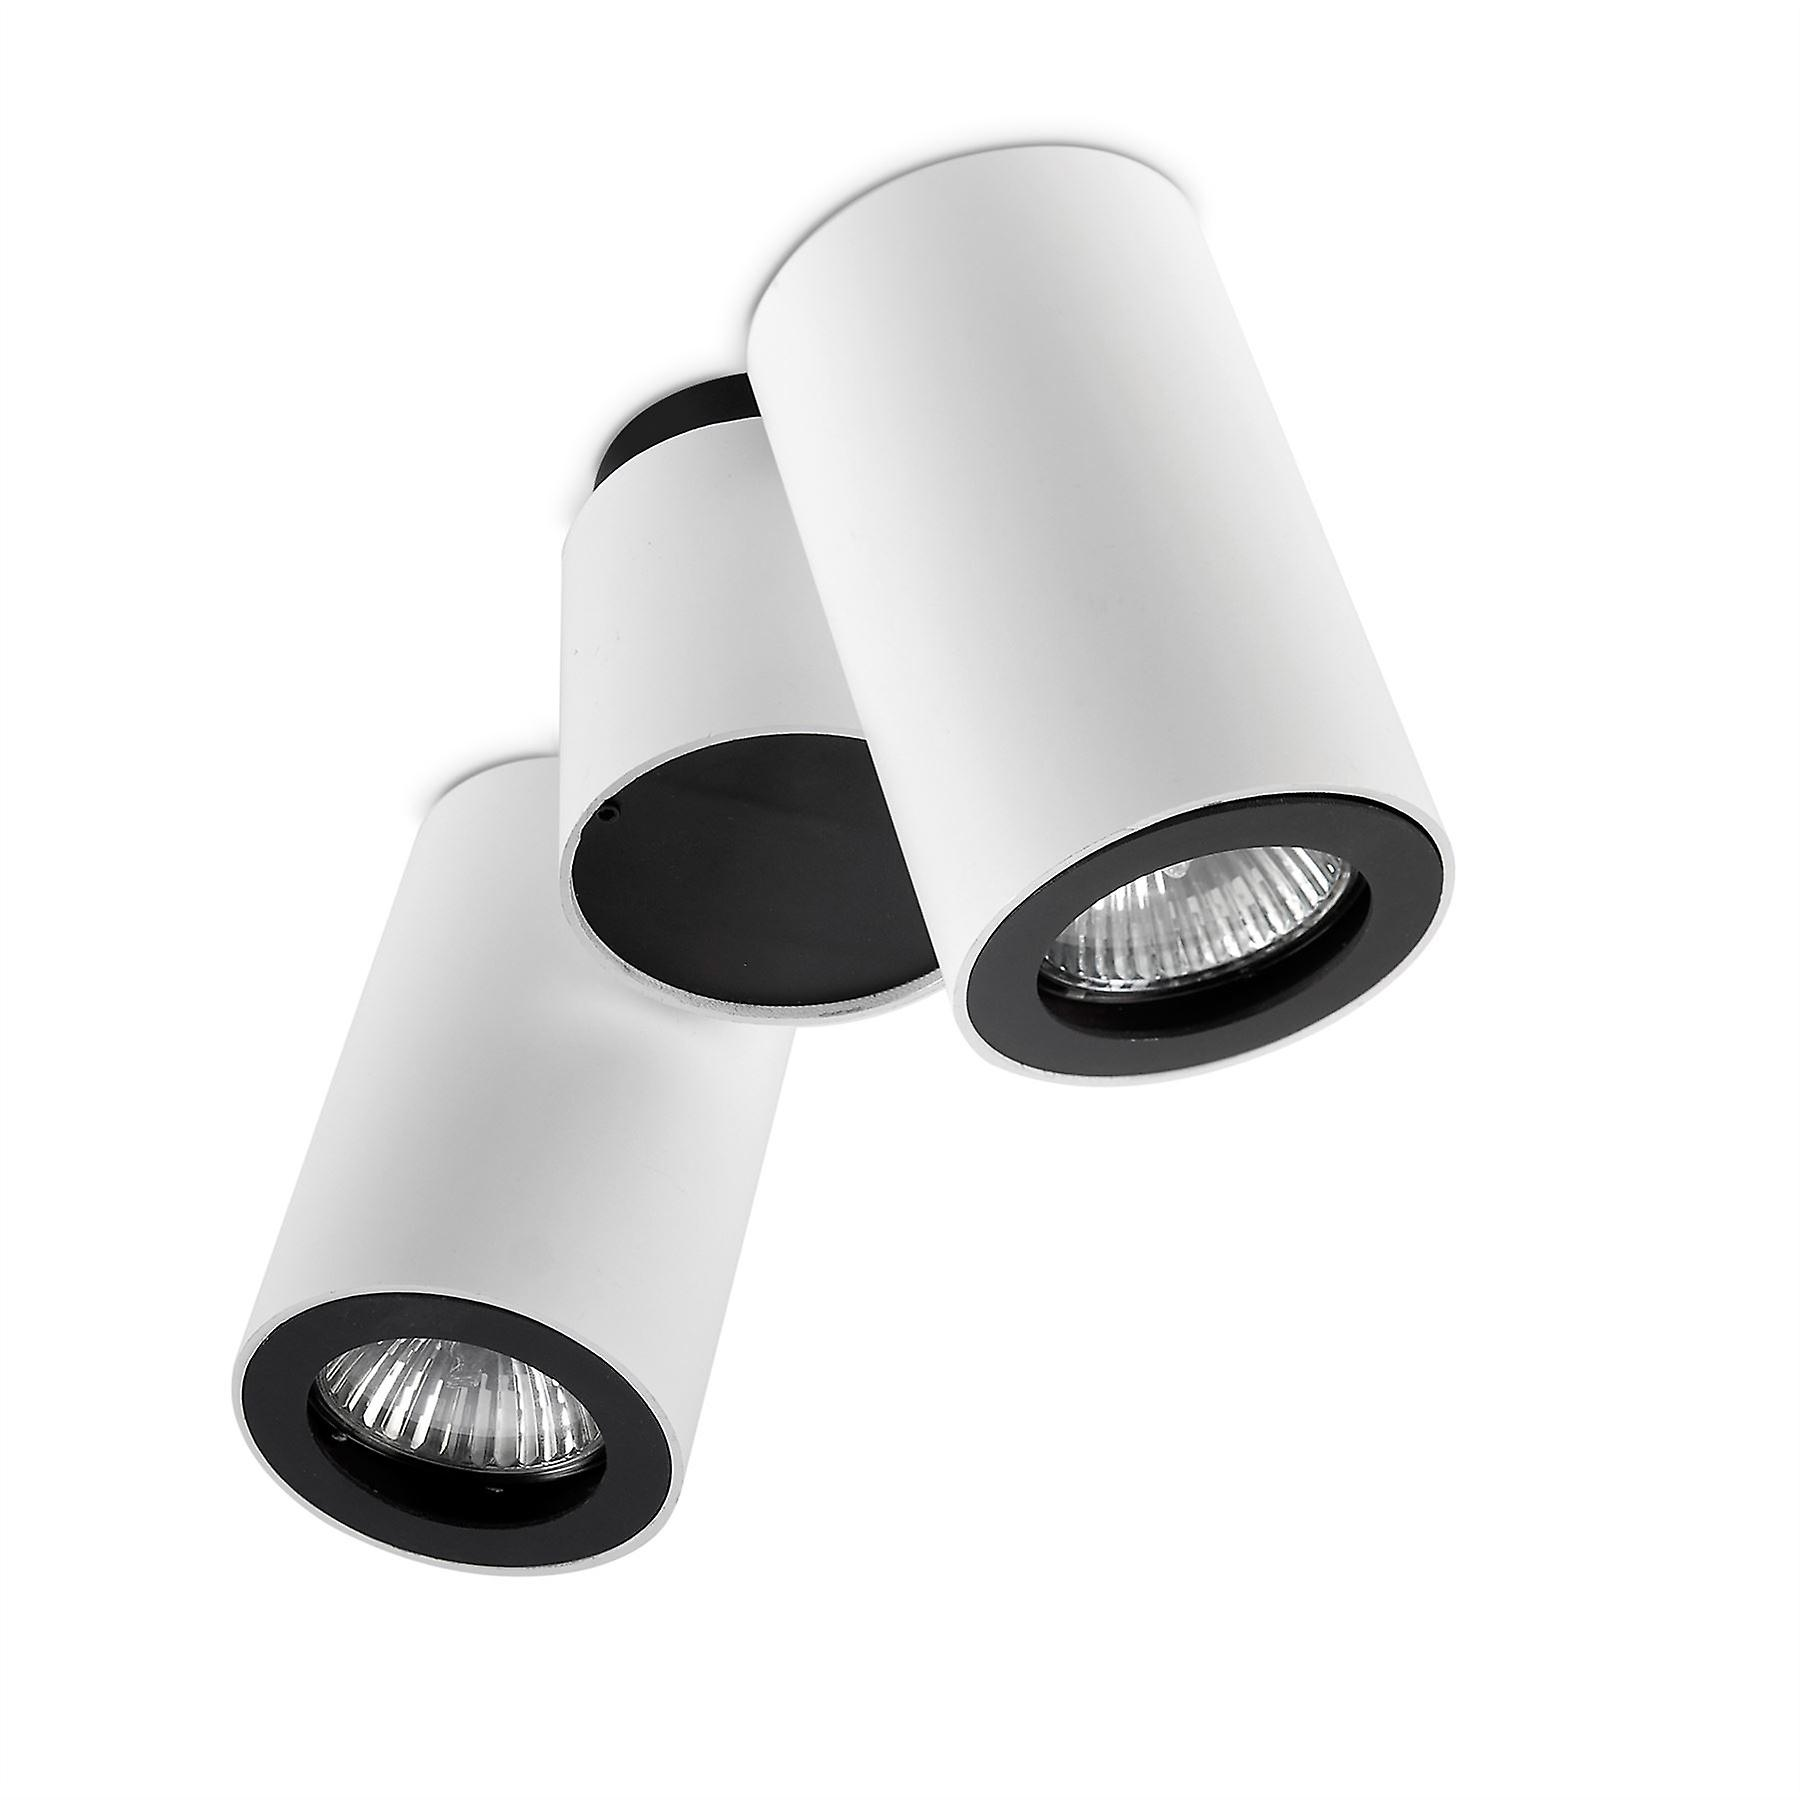 Pipe Adjustable Double Ceiling Light - Leds-C4 15-0074-14-05